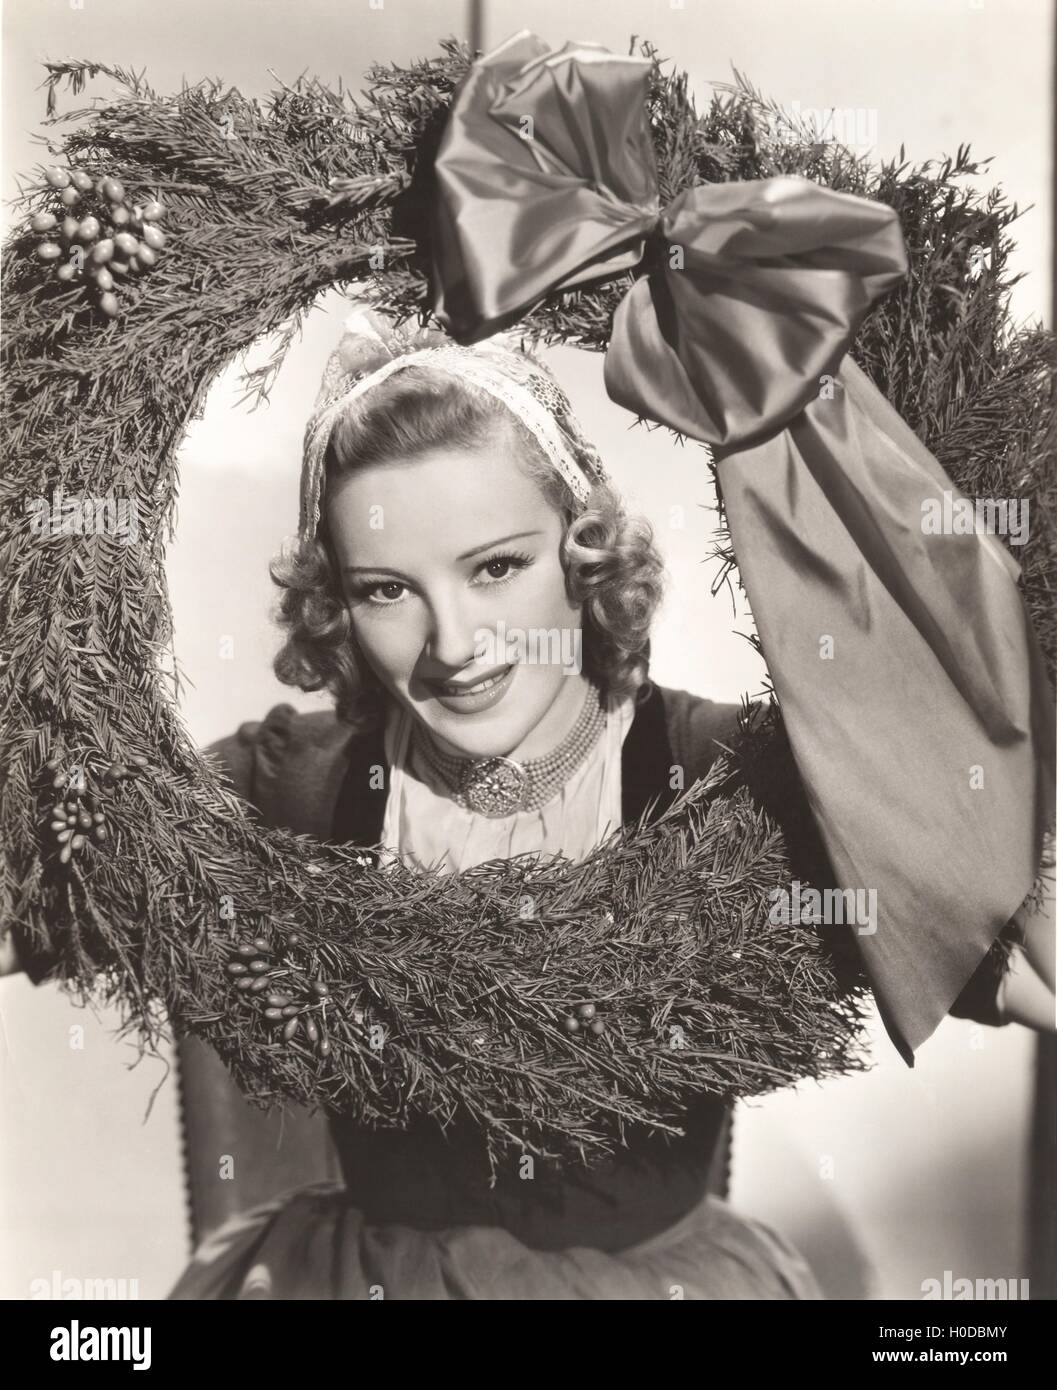 Woman holding large Christmas wreath with bow Stock Photo